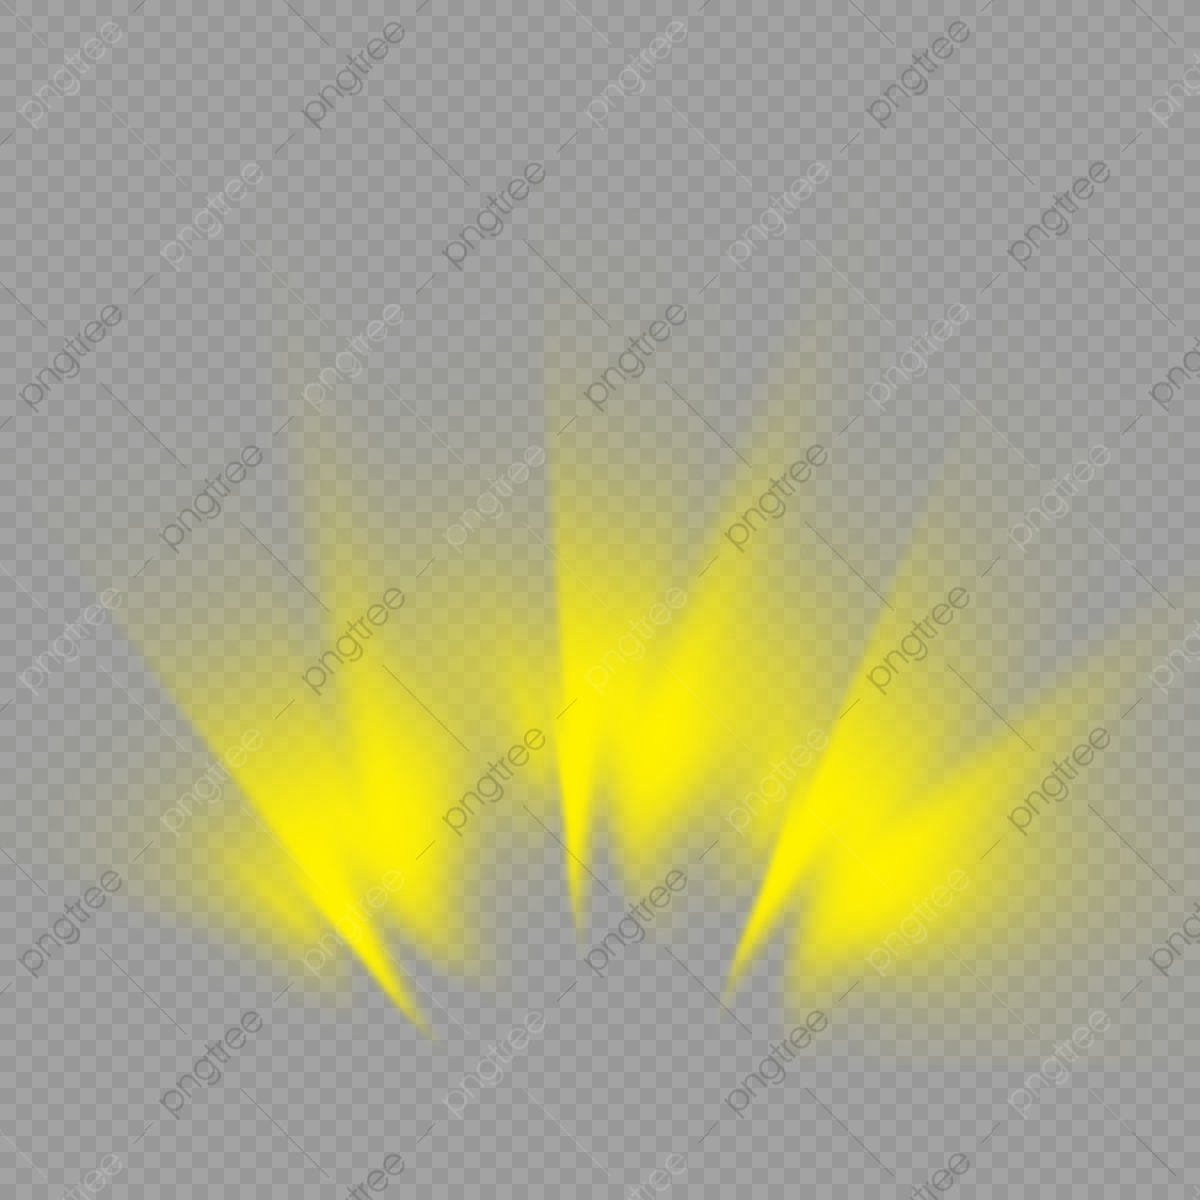 Clipart Copyright Compla Yellow Light Effect - Gonzagasports